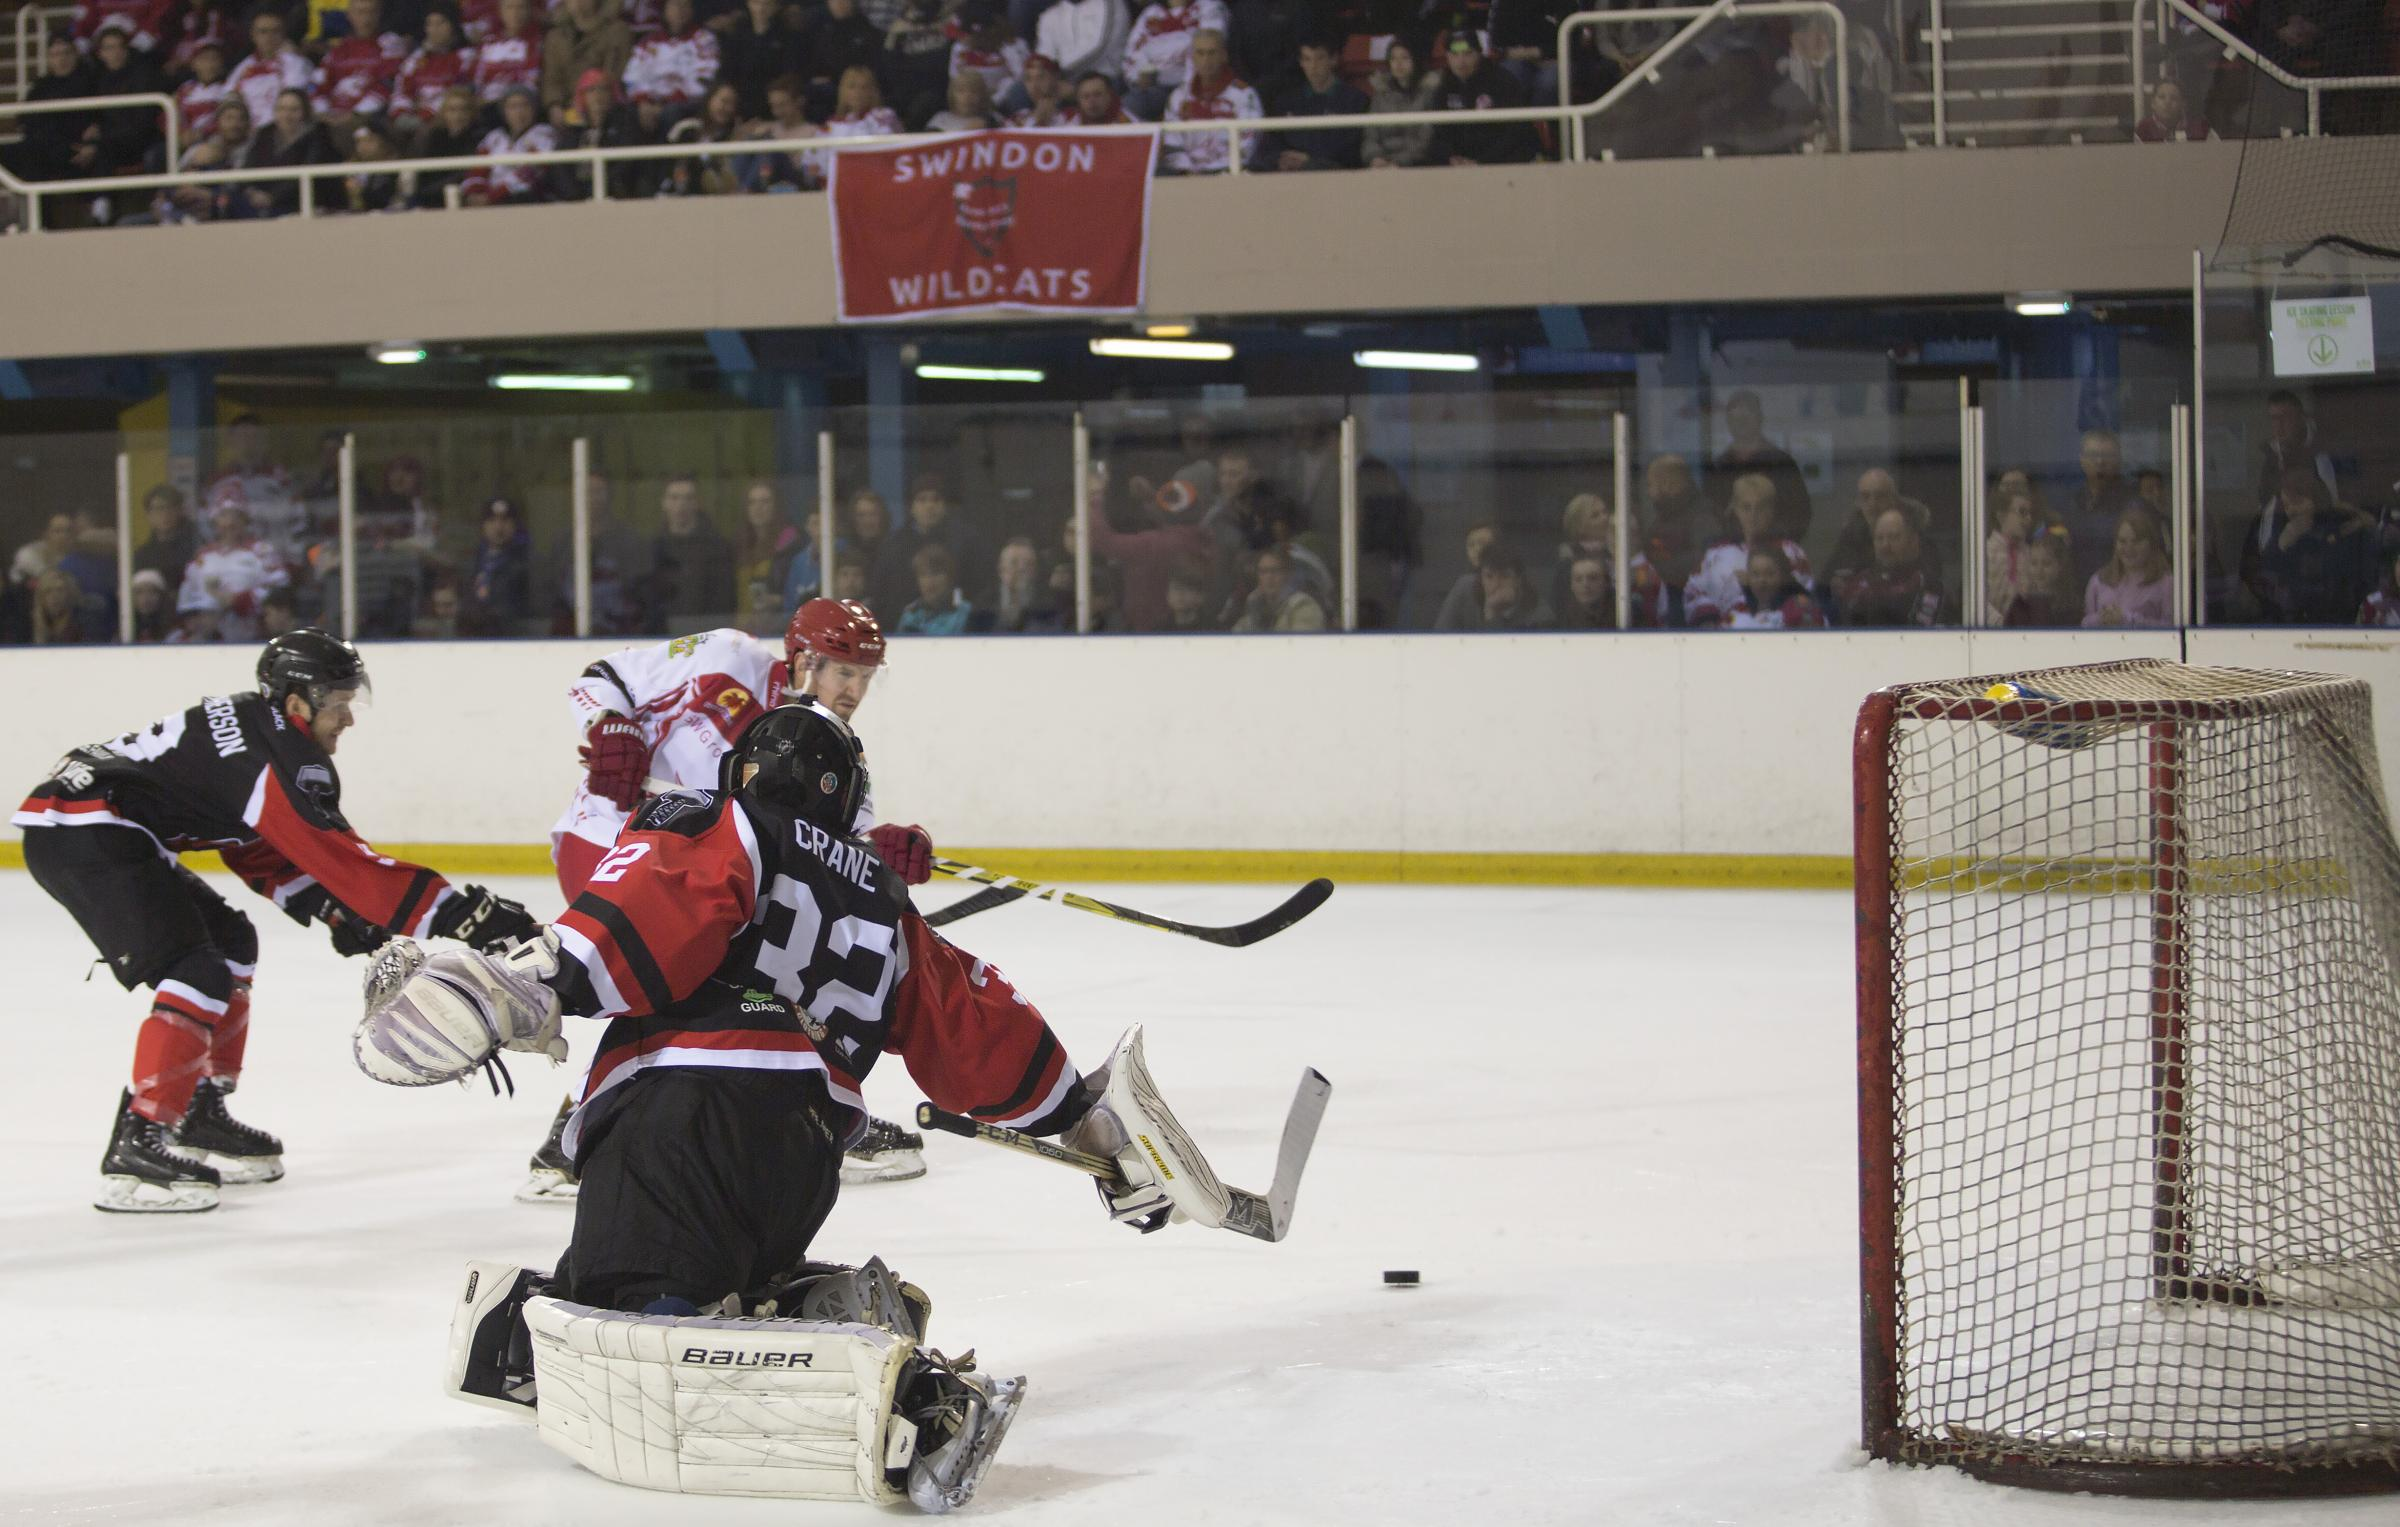 Phil Hill was on target twice for Swindon Wildcats tonight (Picture: RYAN AINSCOW)